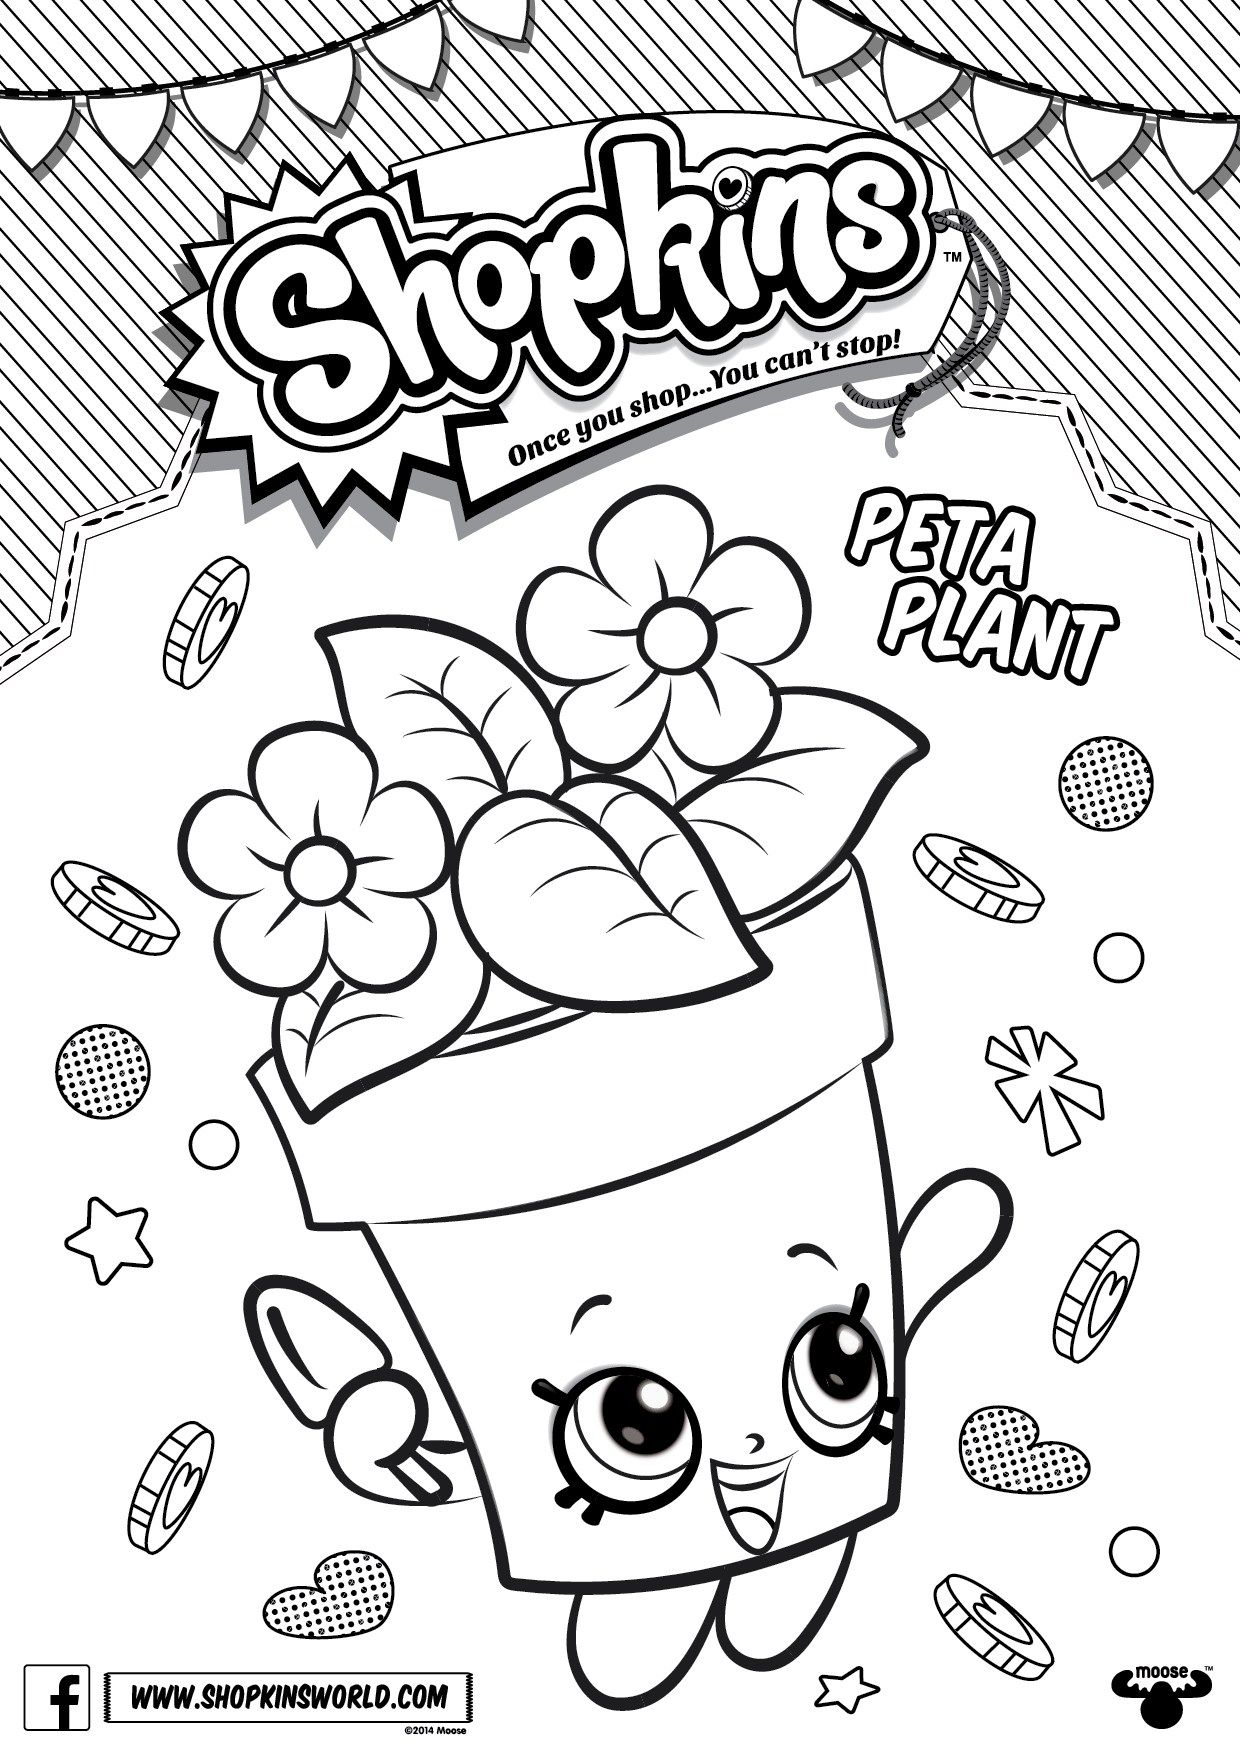 Shopkins coloring pages nail polish - Shopkins Coloring Pages Season 4 Peta Plant